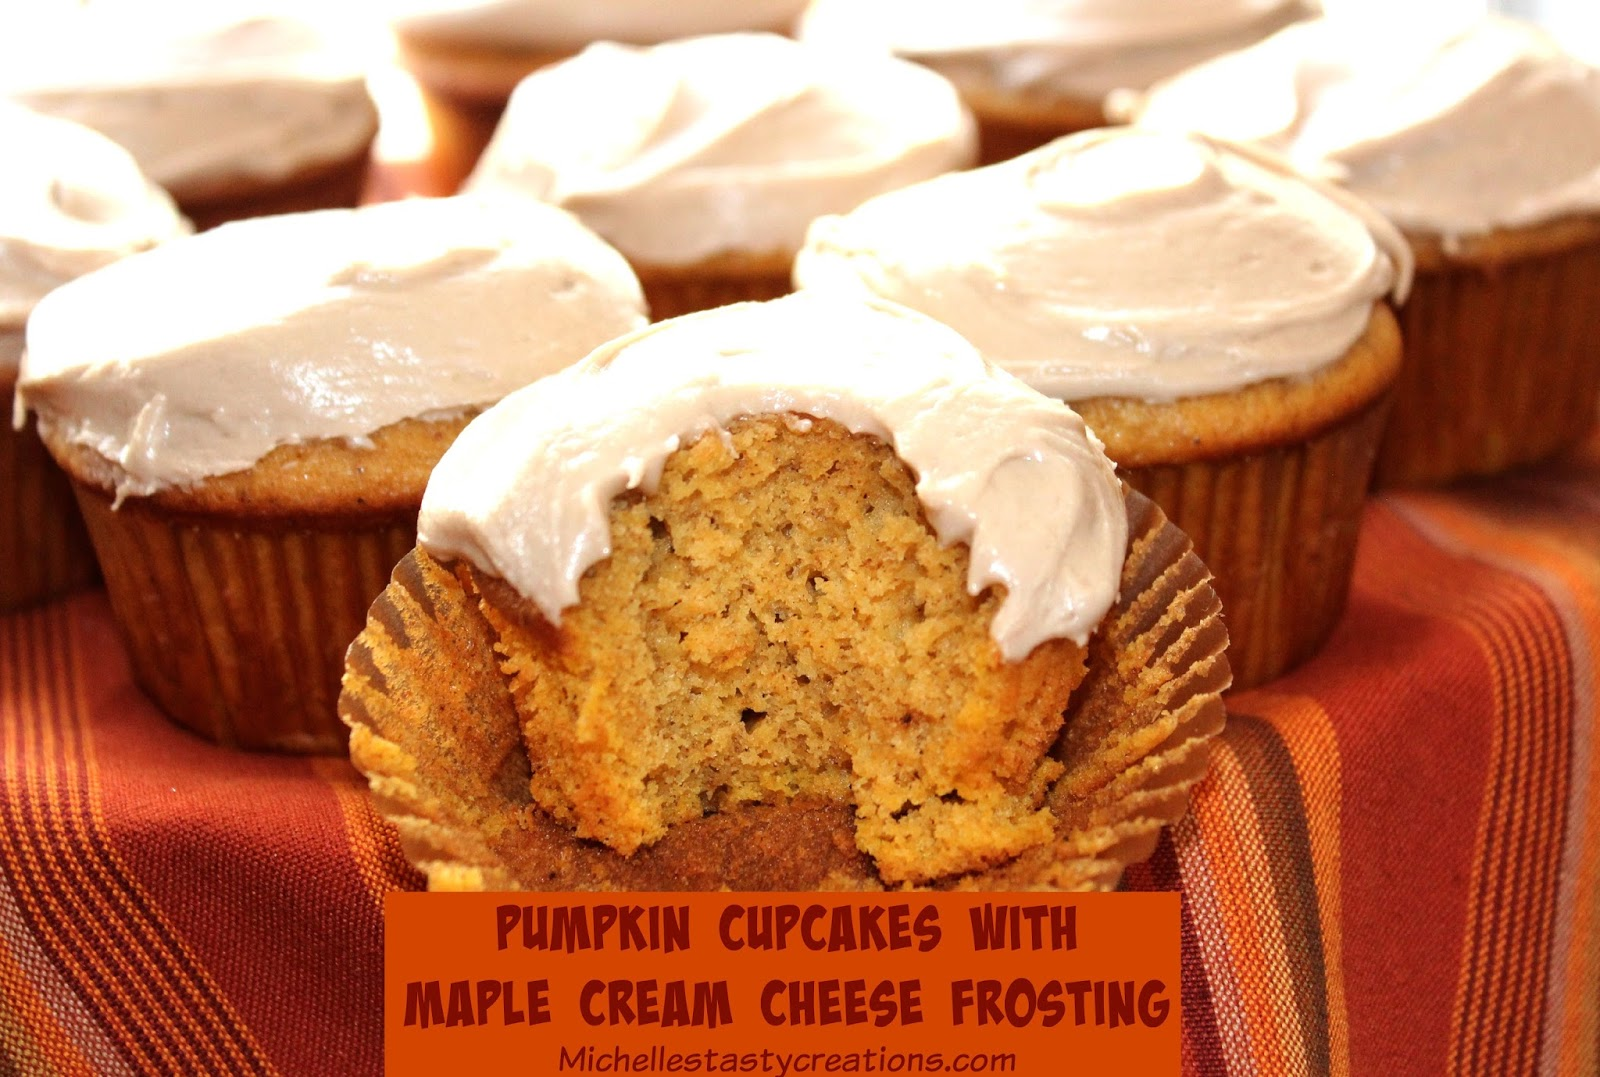 ... Tasty Creations: Pumpkin Cupcakes with Maple Cream Cheese Frosting